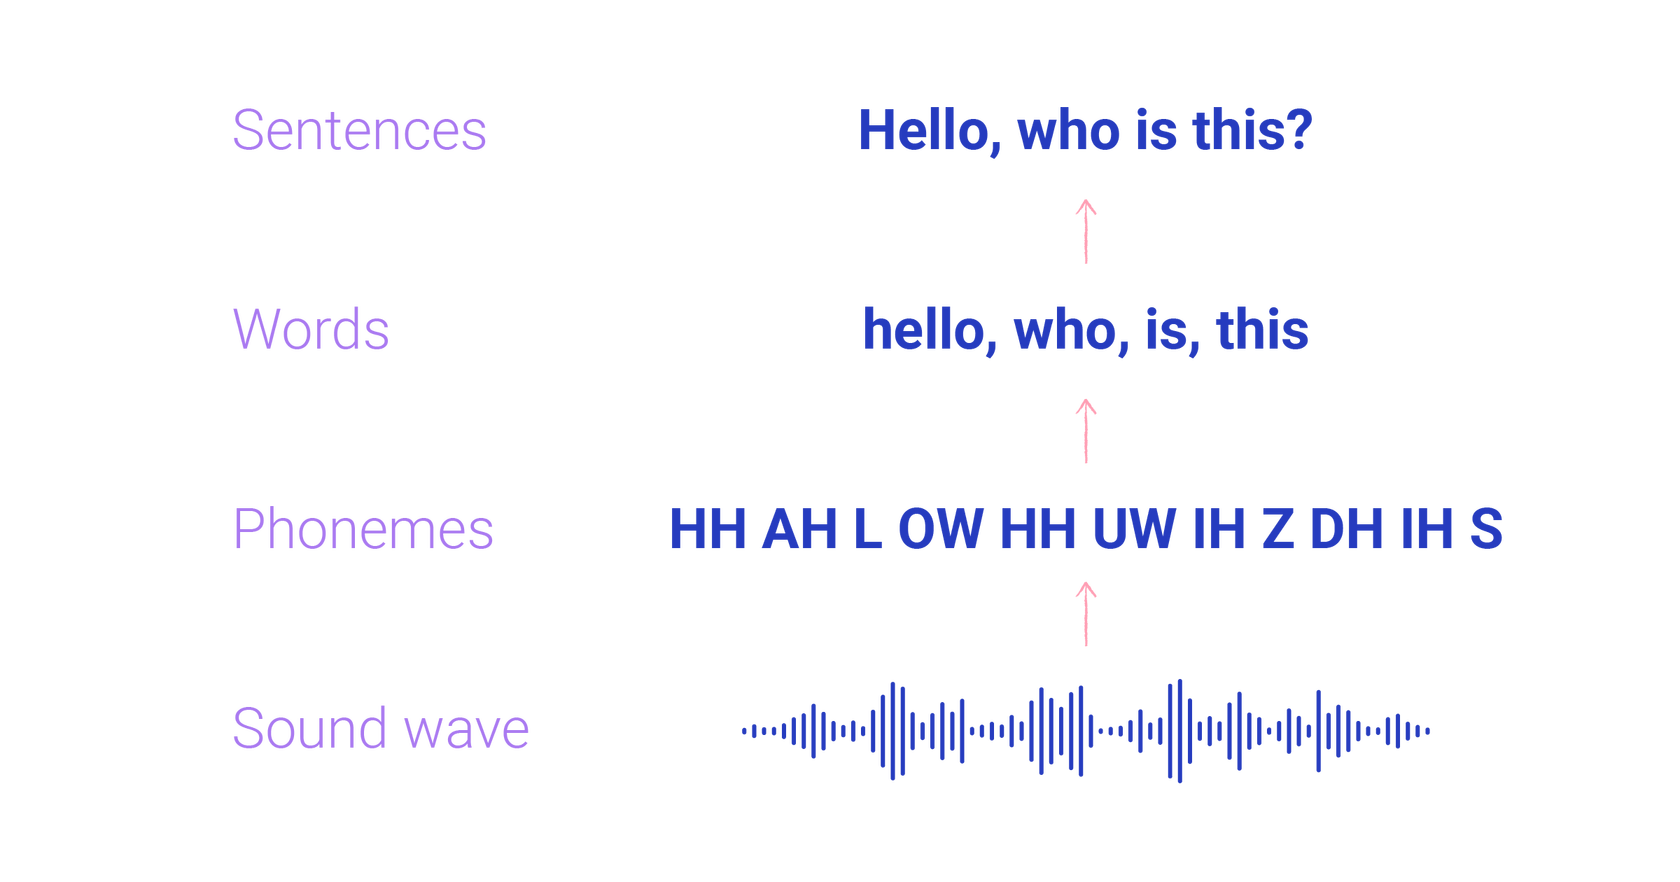 building phonemes, words, and sentences in speech recognition